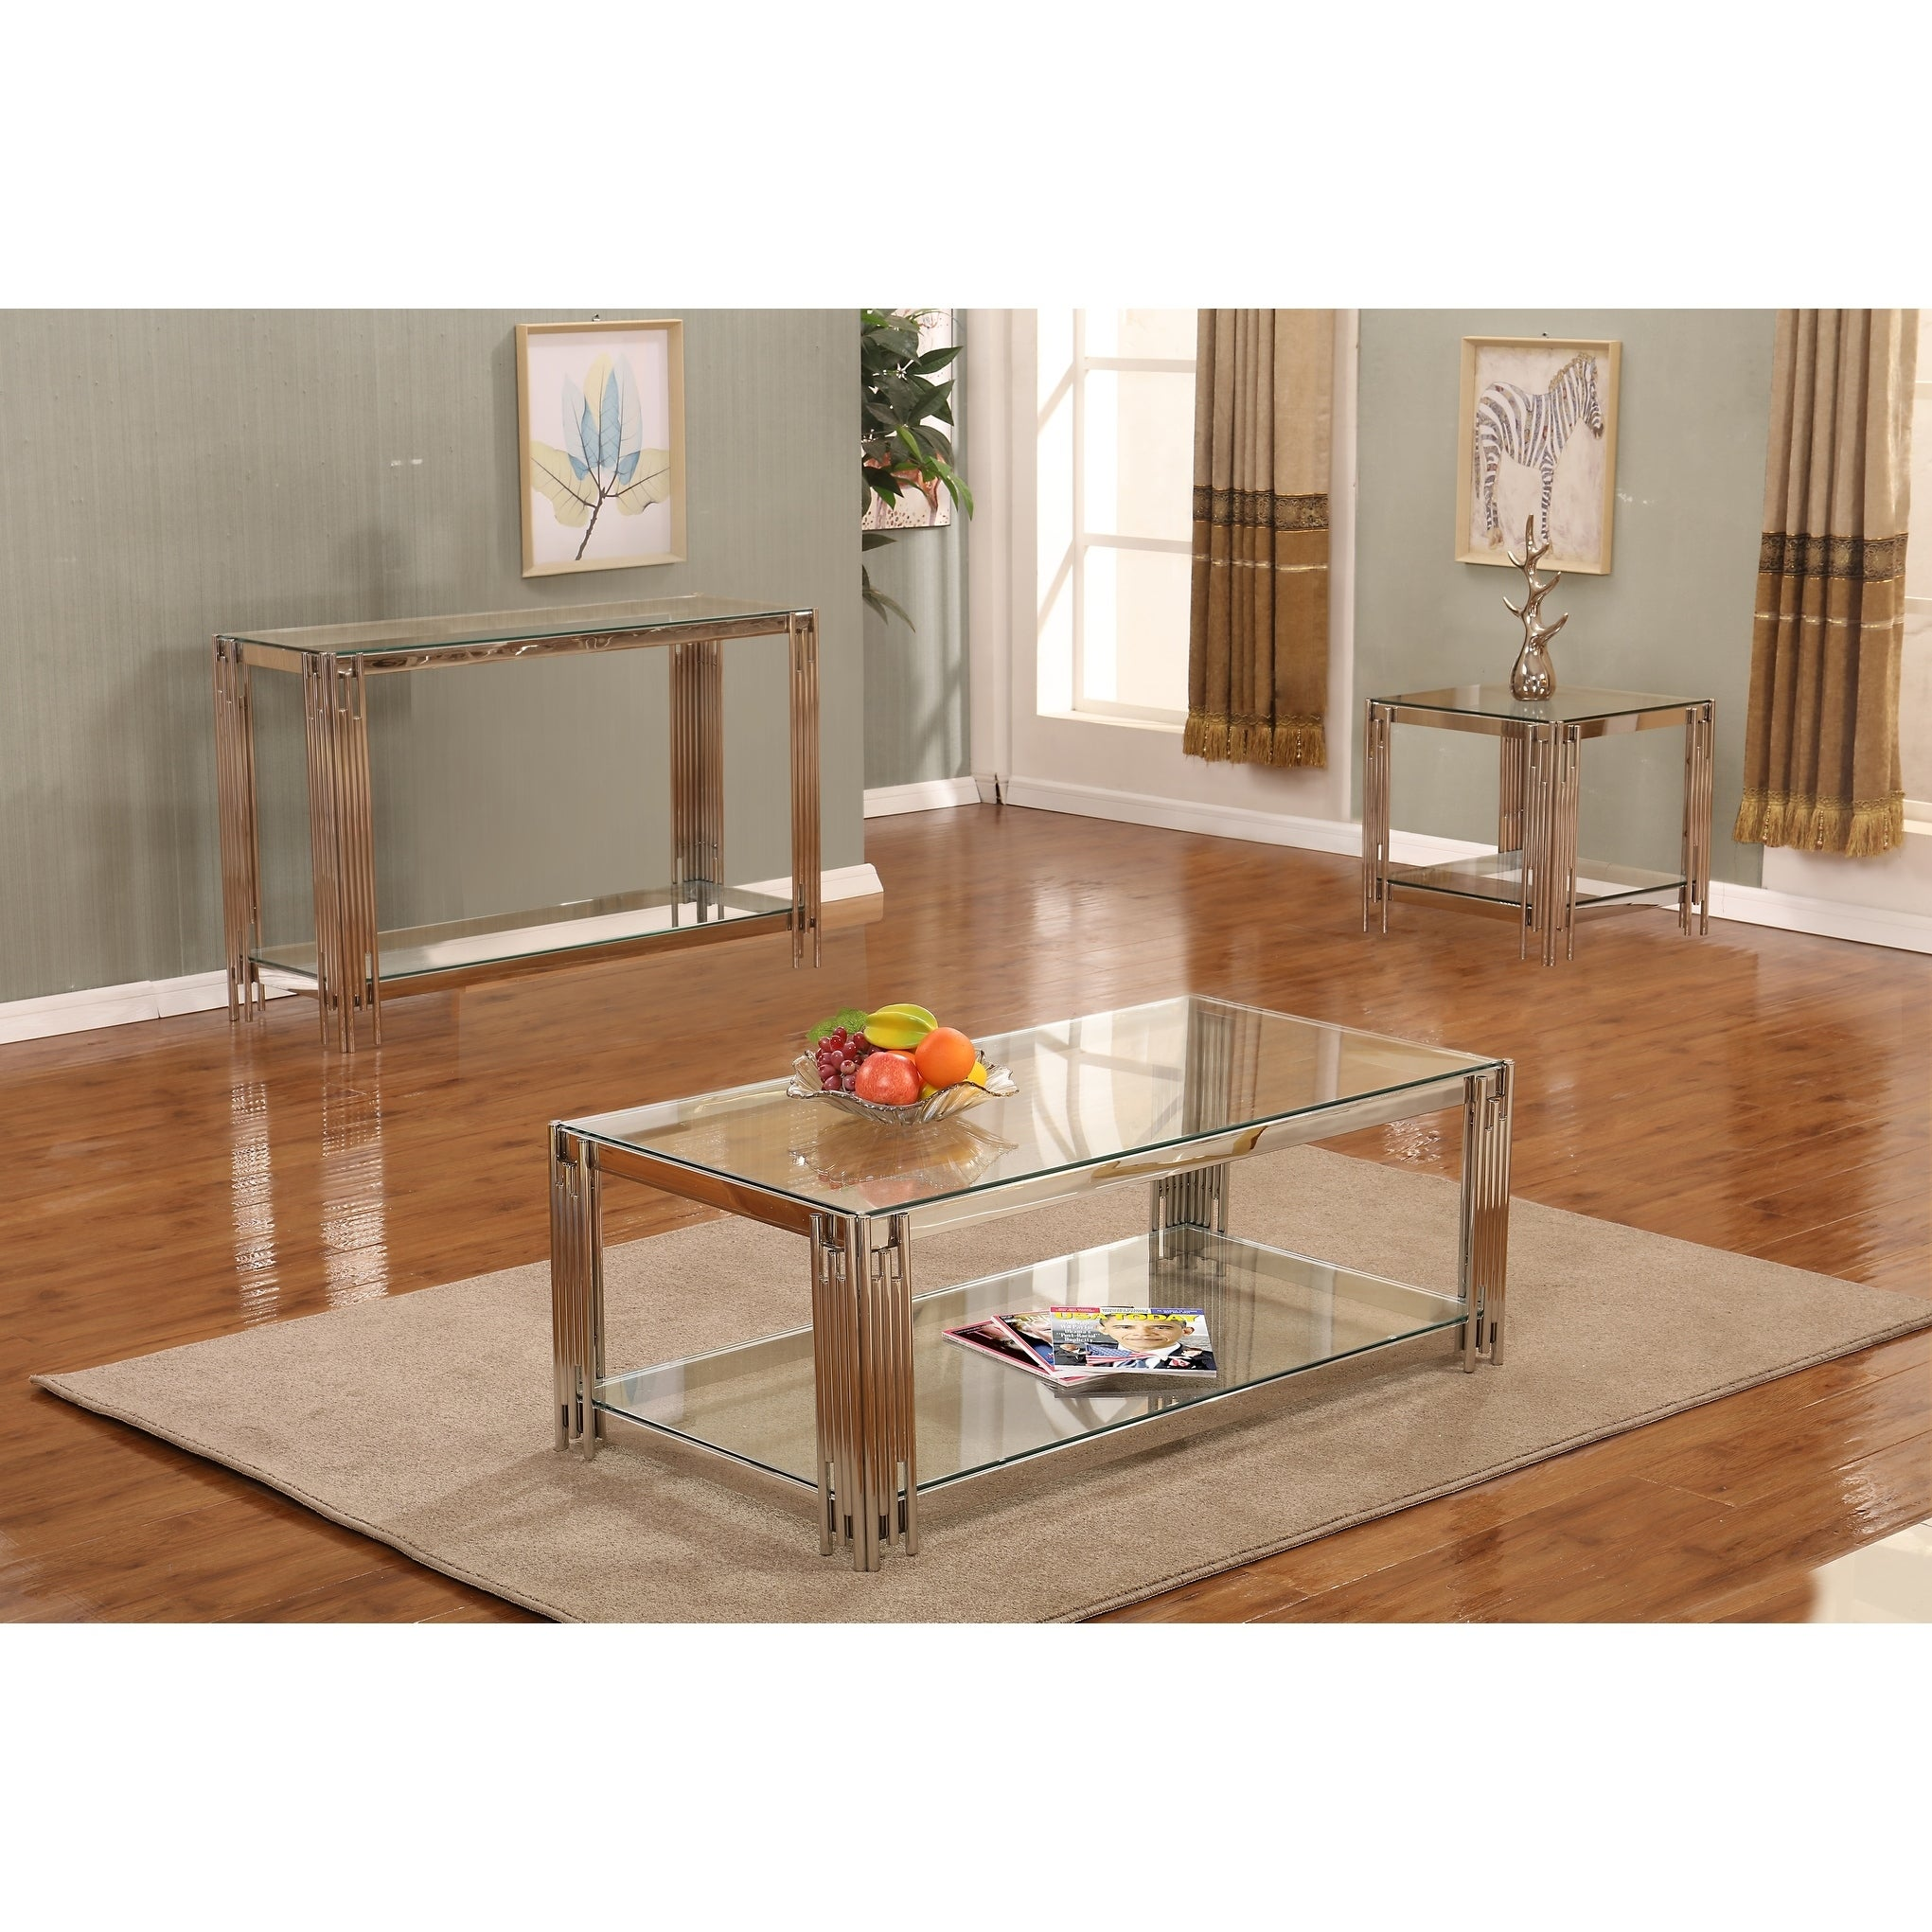 3 Piece Glass Top Coffee Table Sets.Best Quality Furniture 3 Piece Glass Top Coffee Console And End Table Set